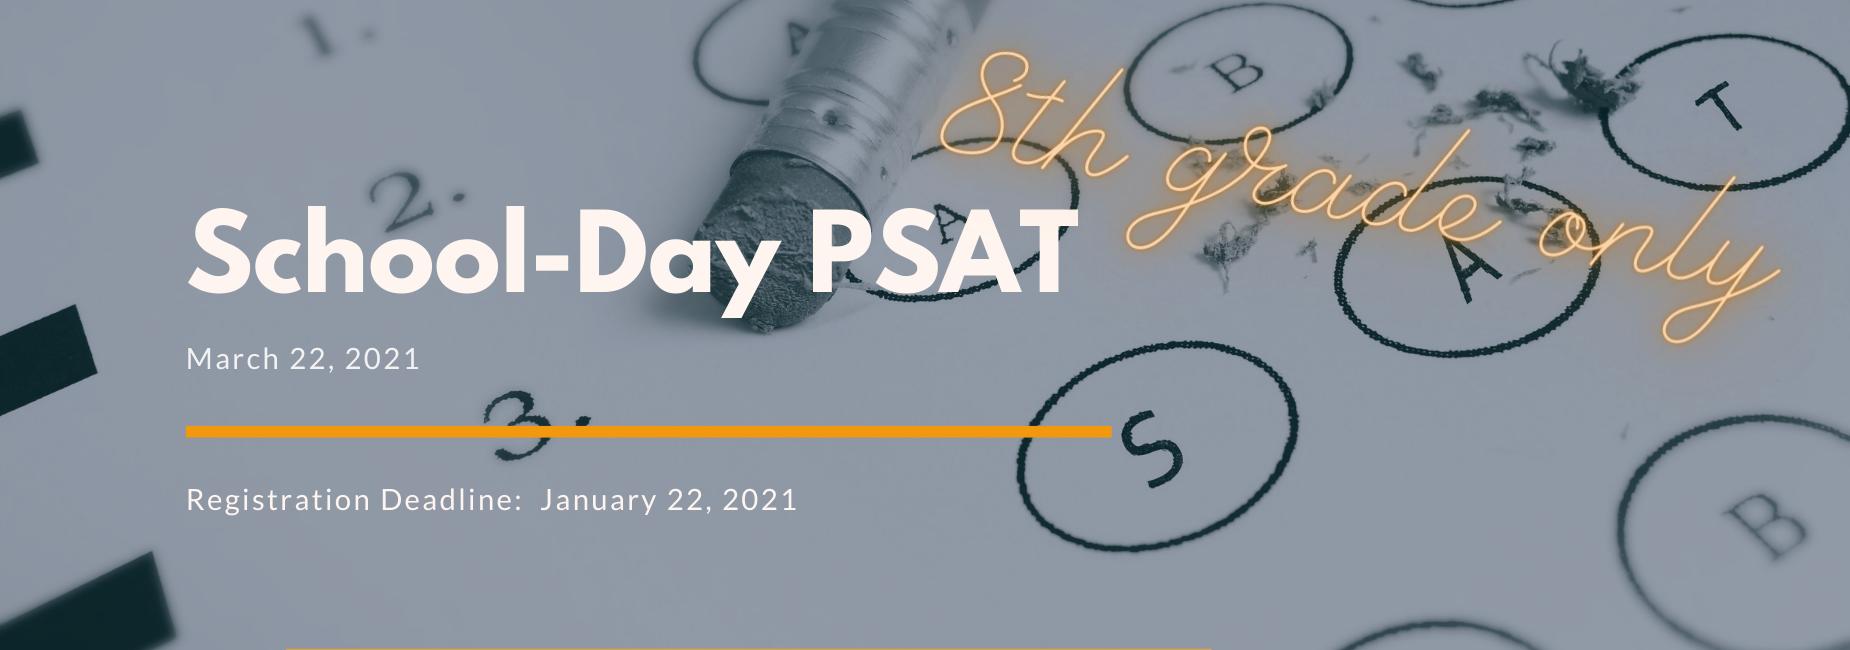 graphic of exam sheet about the school day psat on March 22